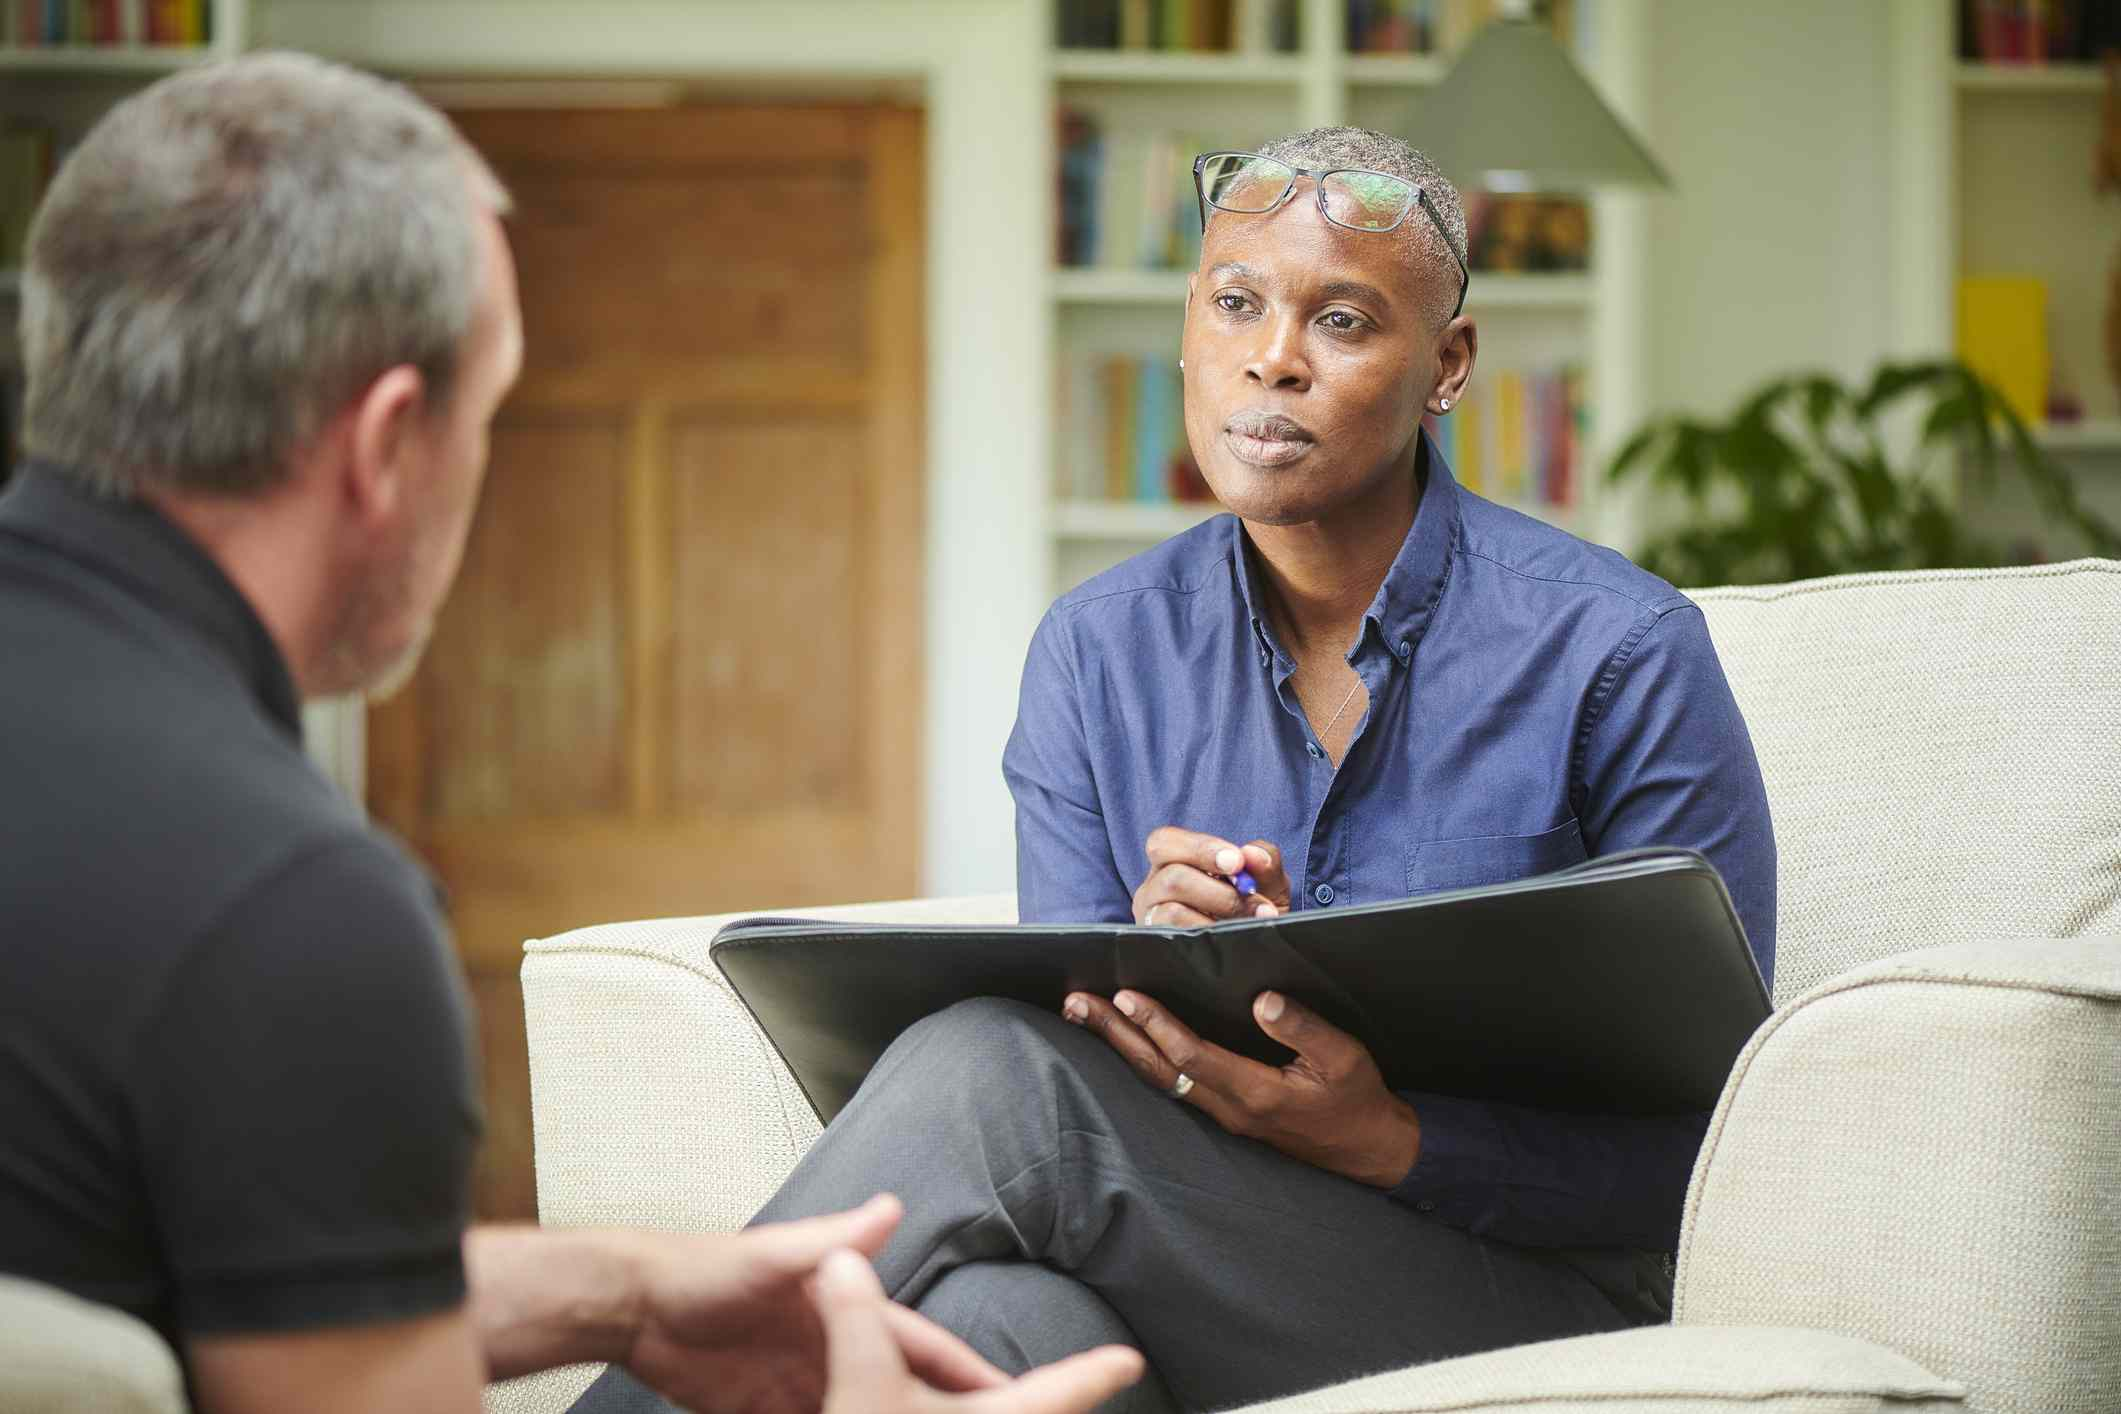 Mental health professional talking to client